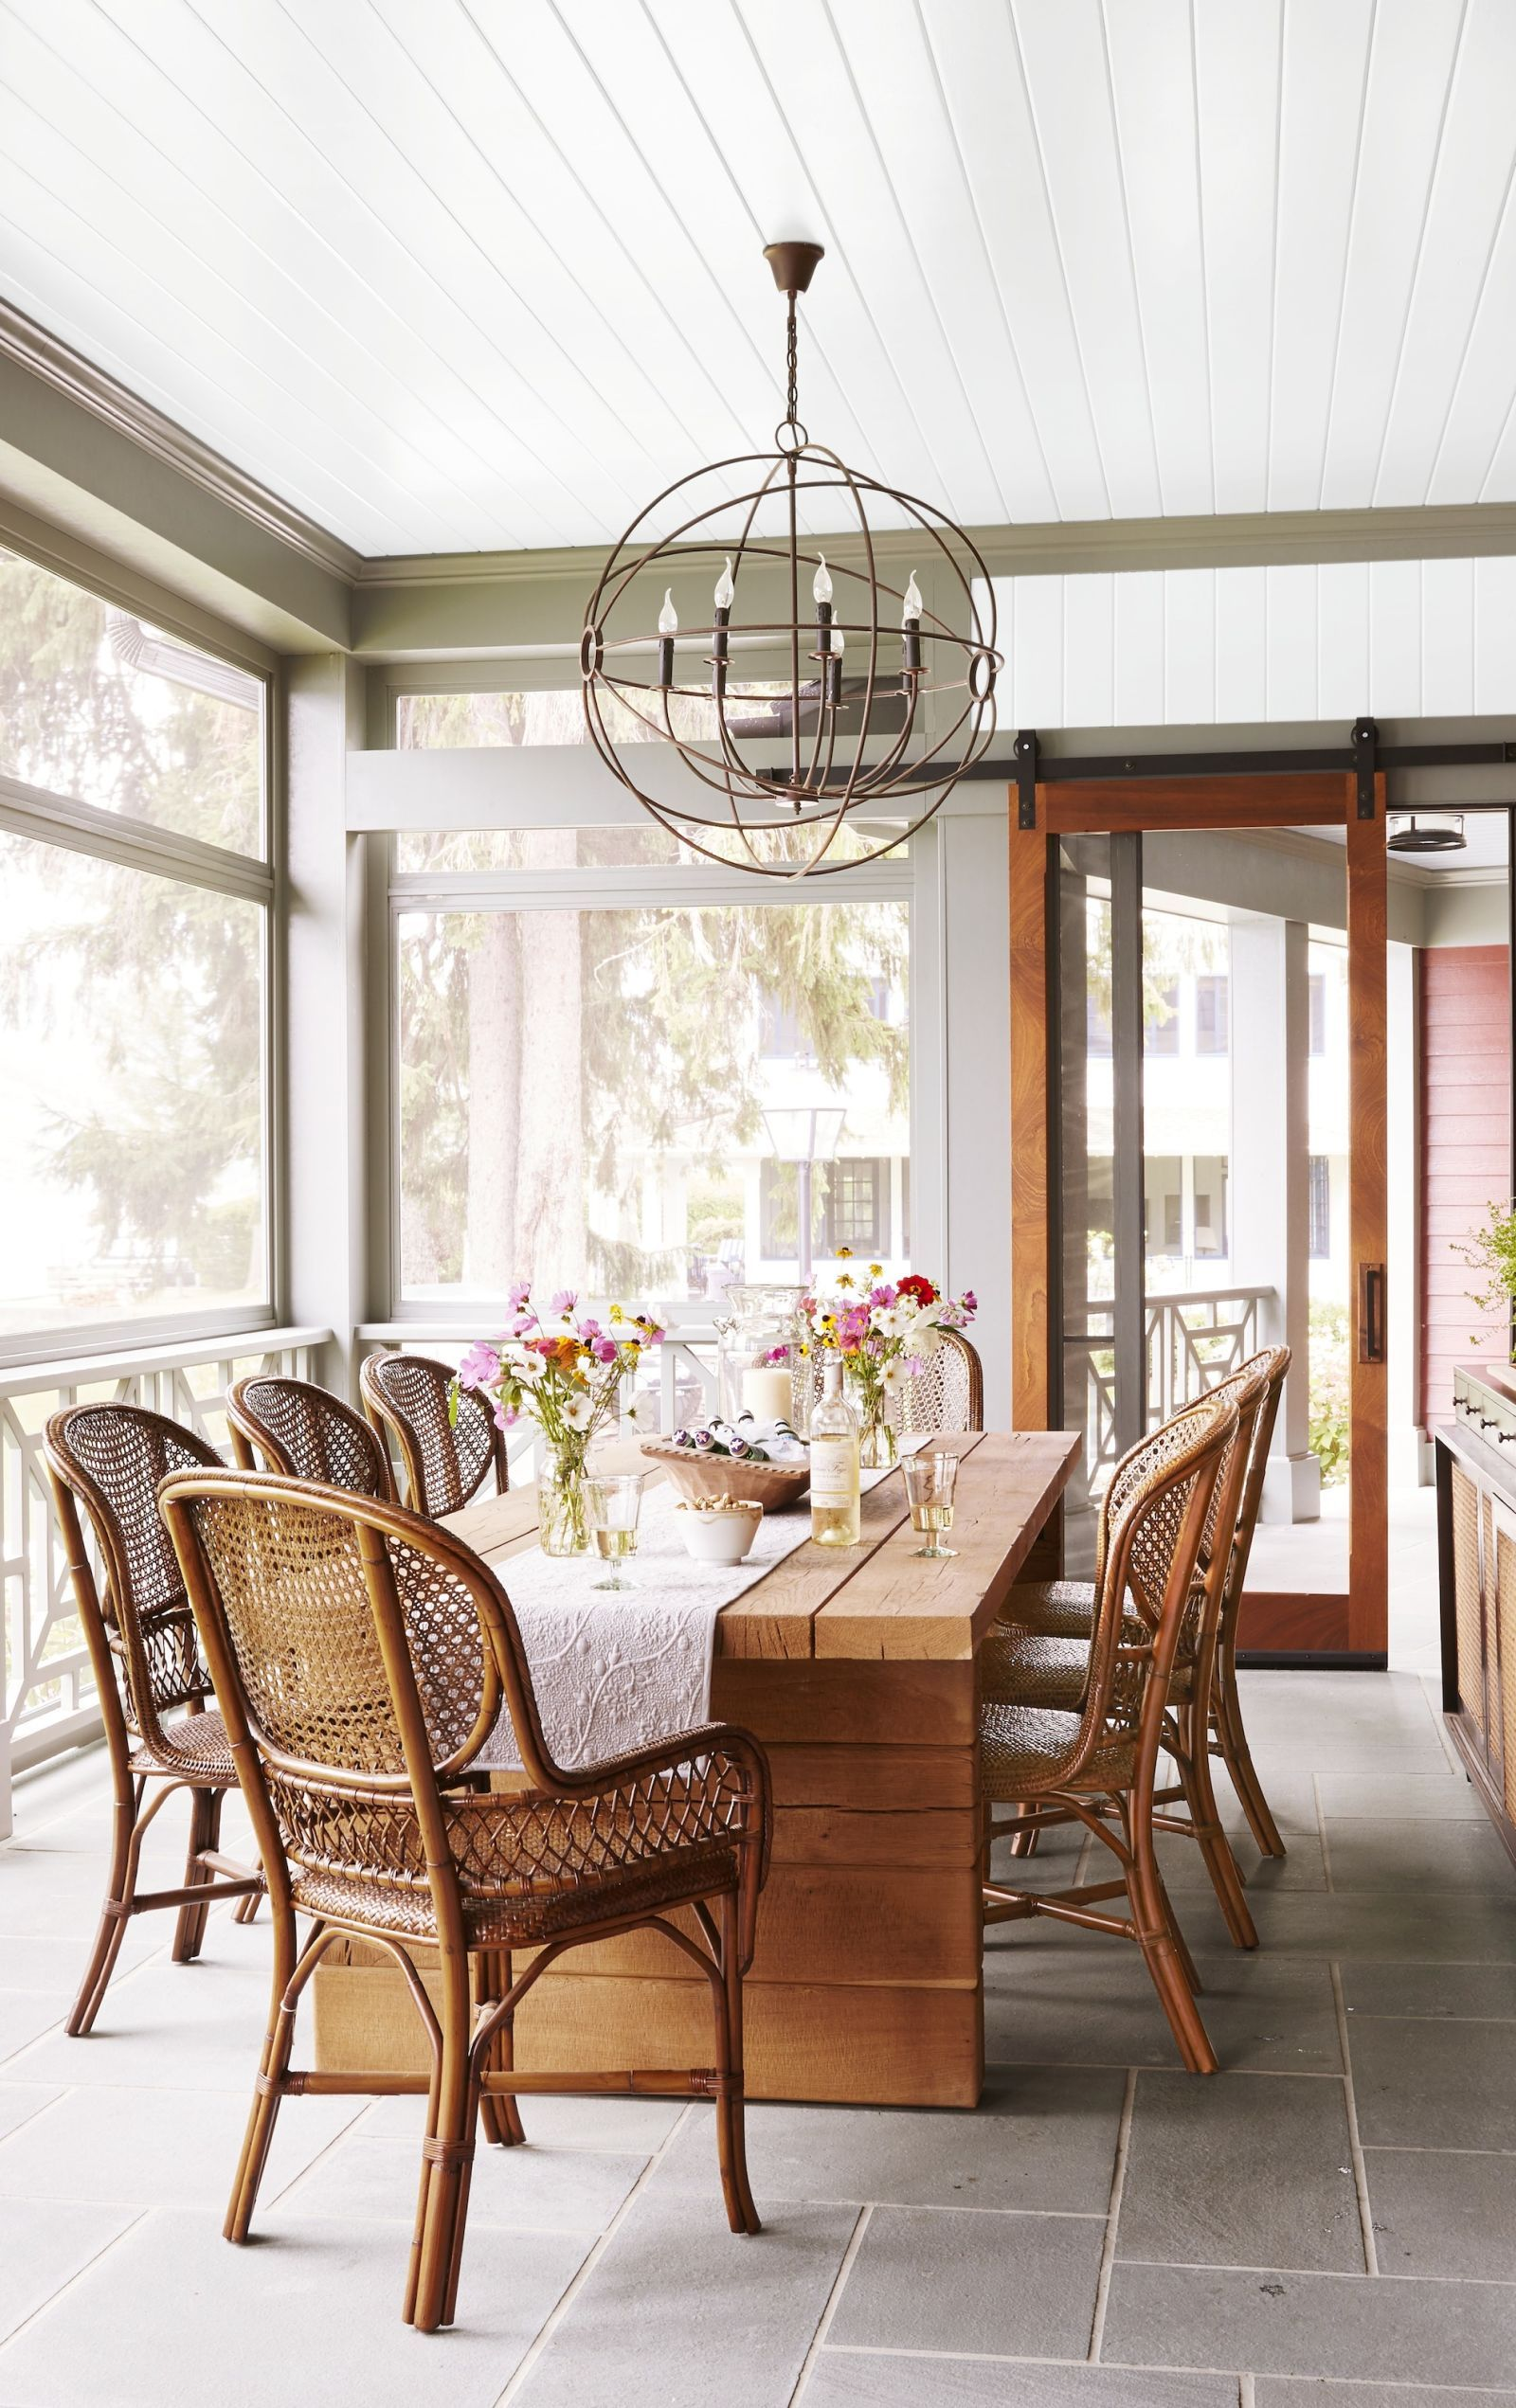 10 Sunroom Decorating Ideas   Best Designs for Sun Rooms image